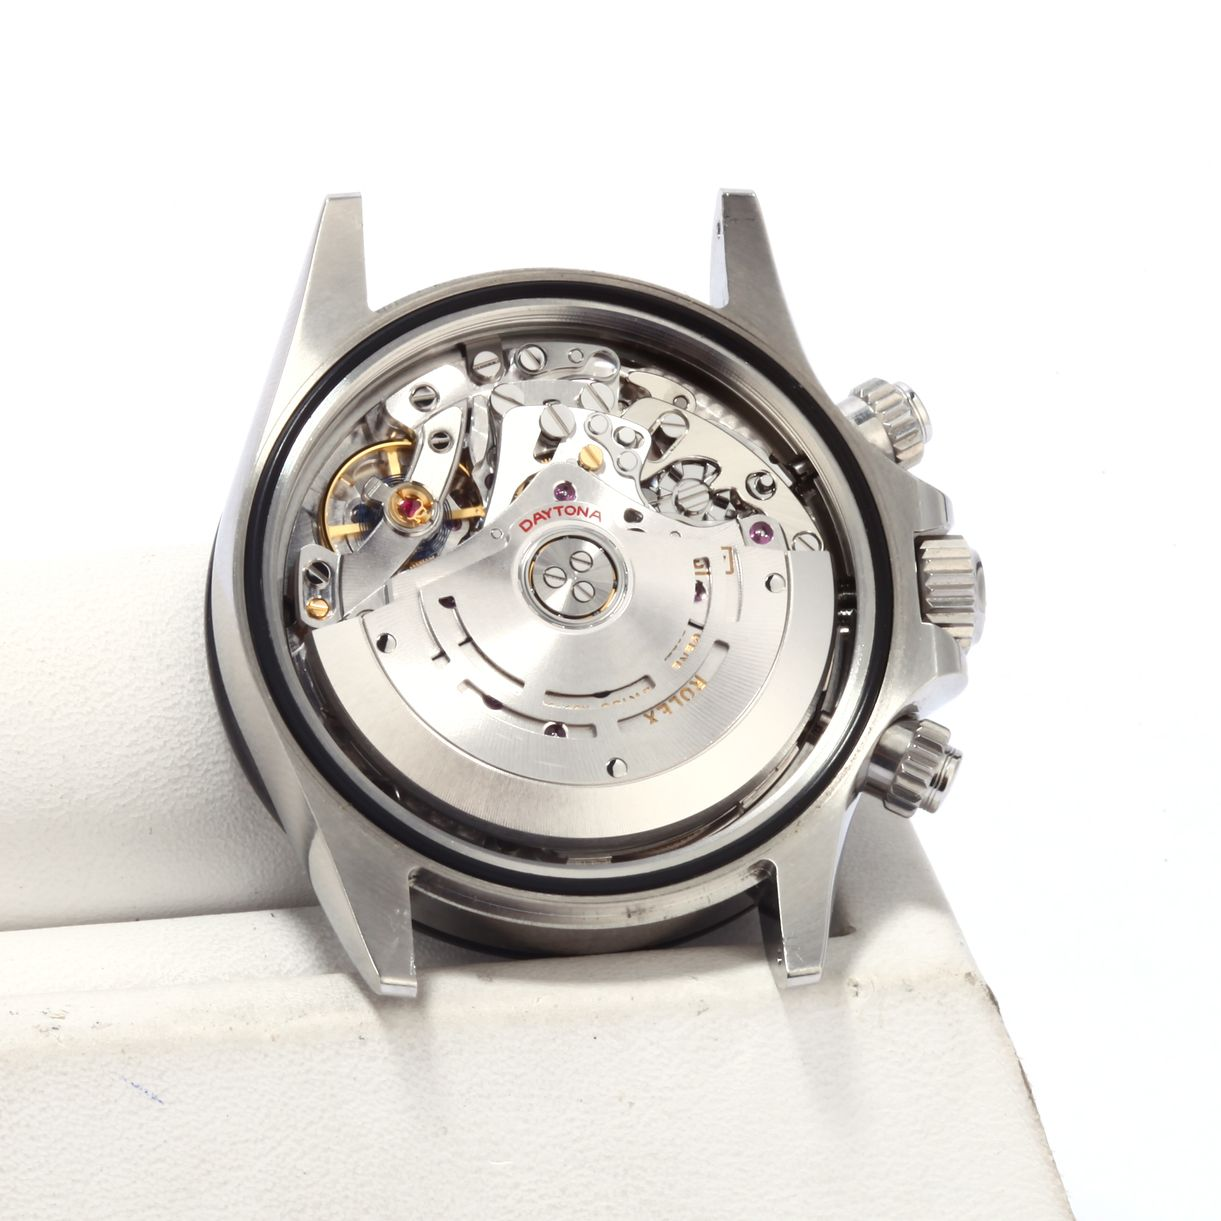 Rolex Daytona Movement Guide Zenith vs In-House 4030 4130